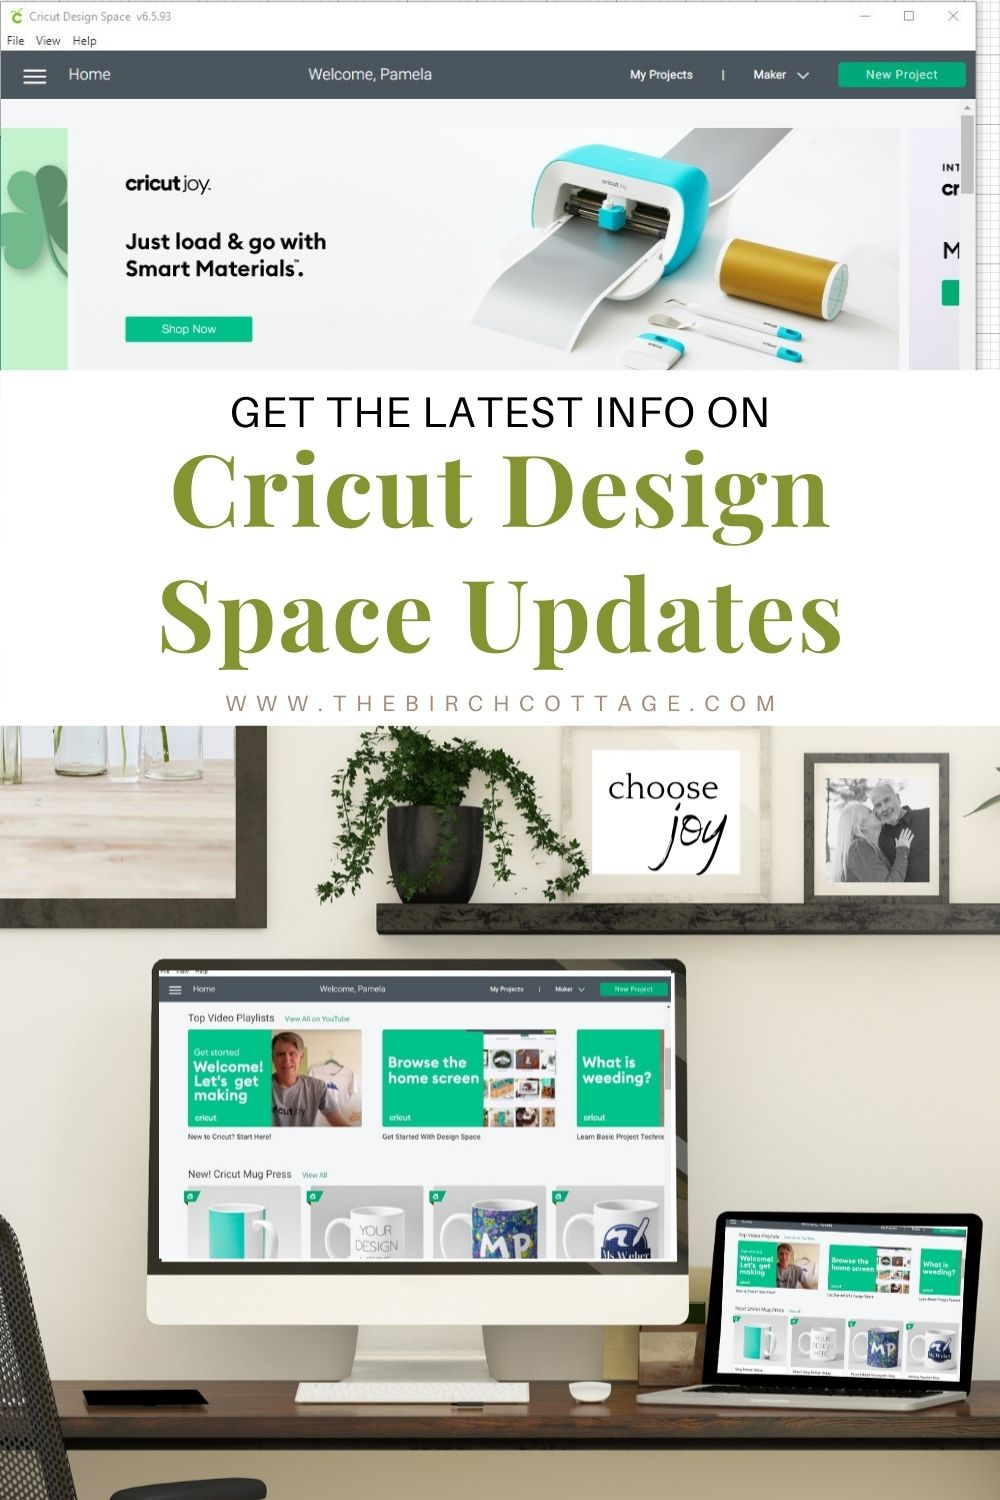 Cricut Design Space welcome screen displayed on laptop